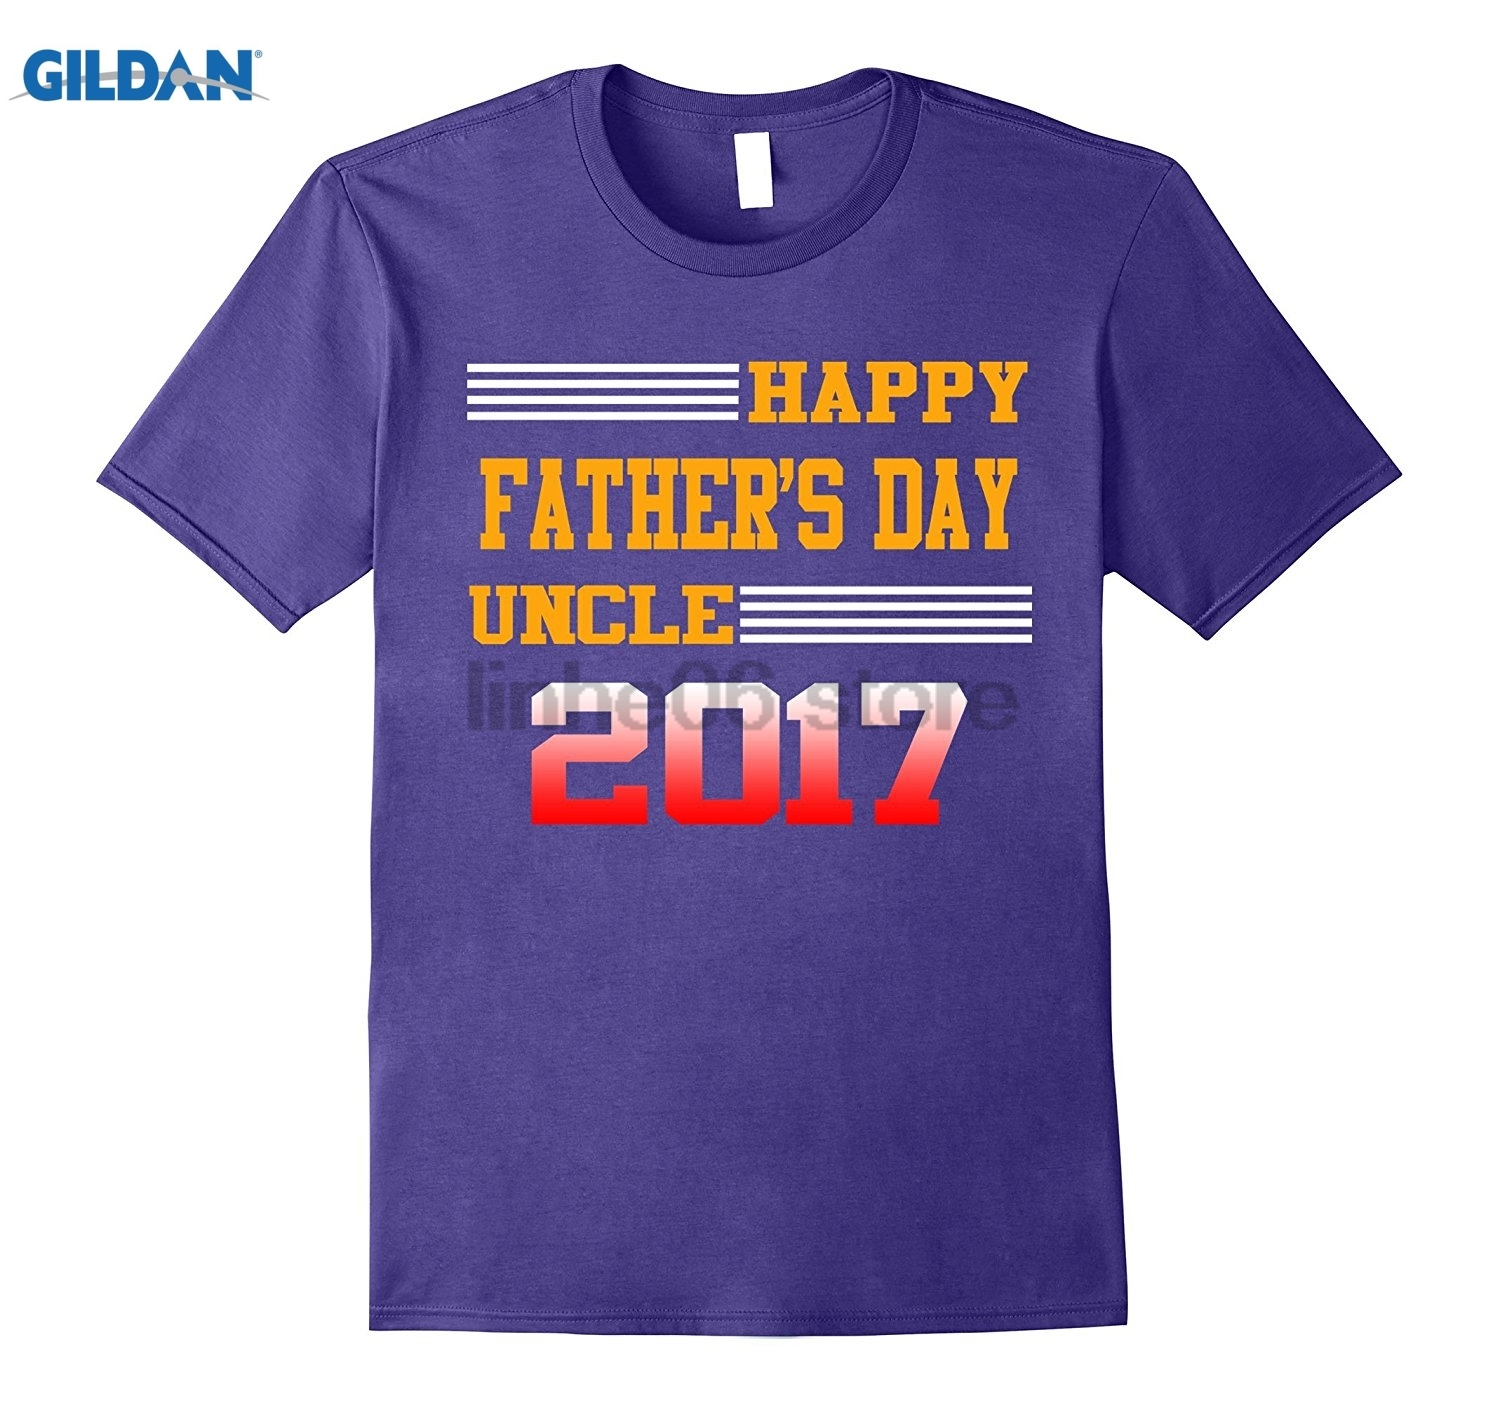 GILDAN Happy Fathers Day Uncle 2017 T-Shirt, father Day Gifts Fashion men free shipping summer dress T-shirt